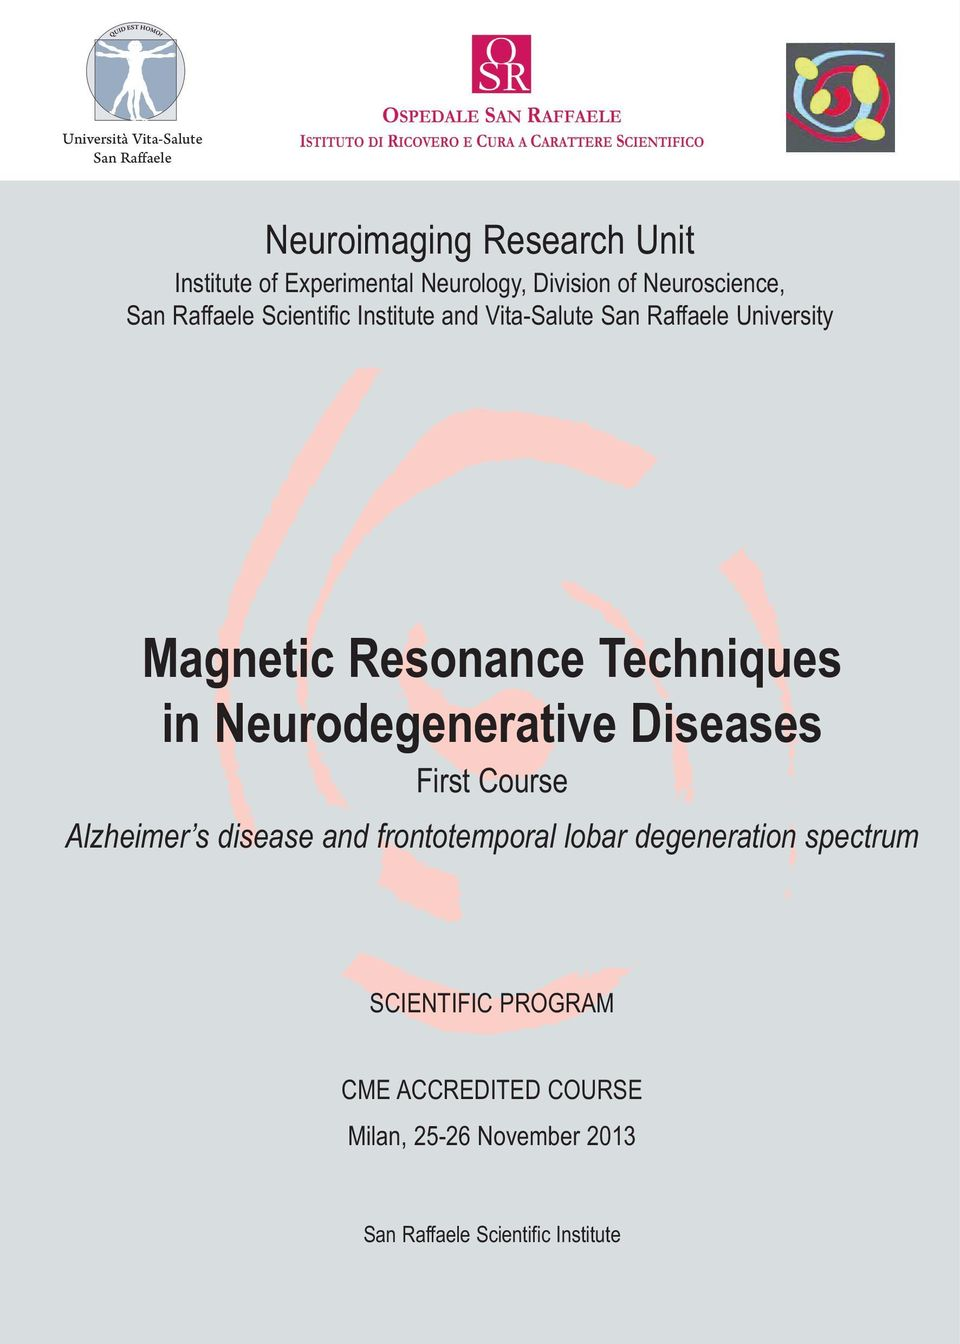 Magnetic Resonance Techniques in Neurodegenerative Diseases First Course Alzheimer s disease and